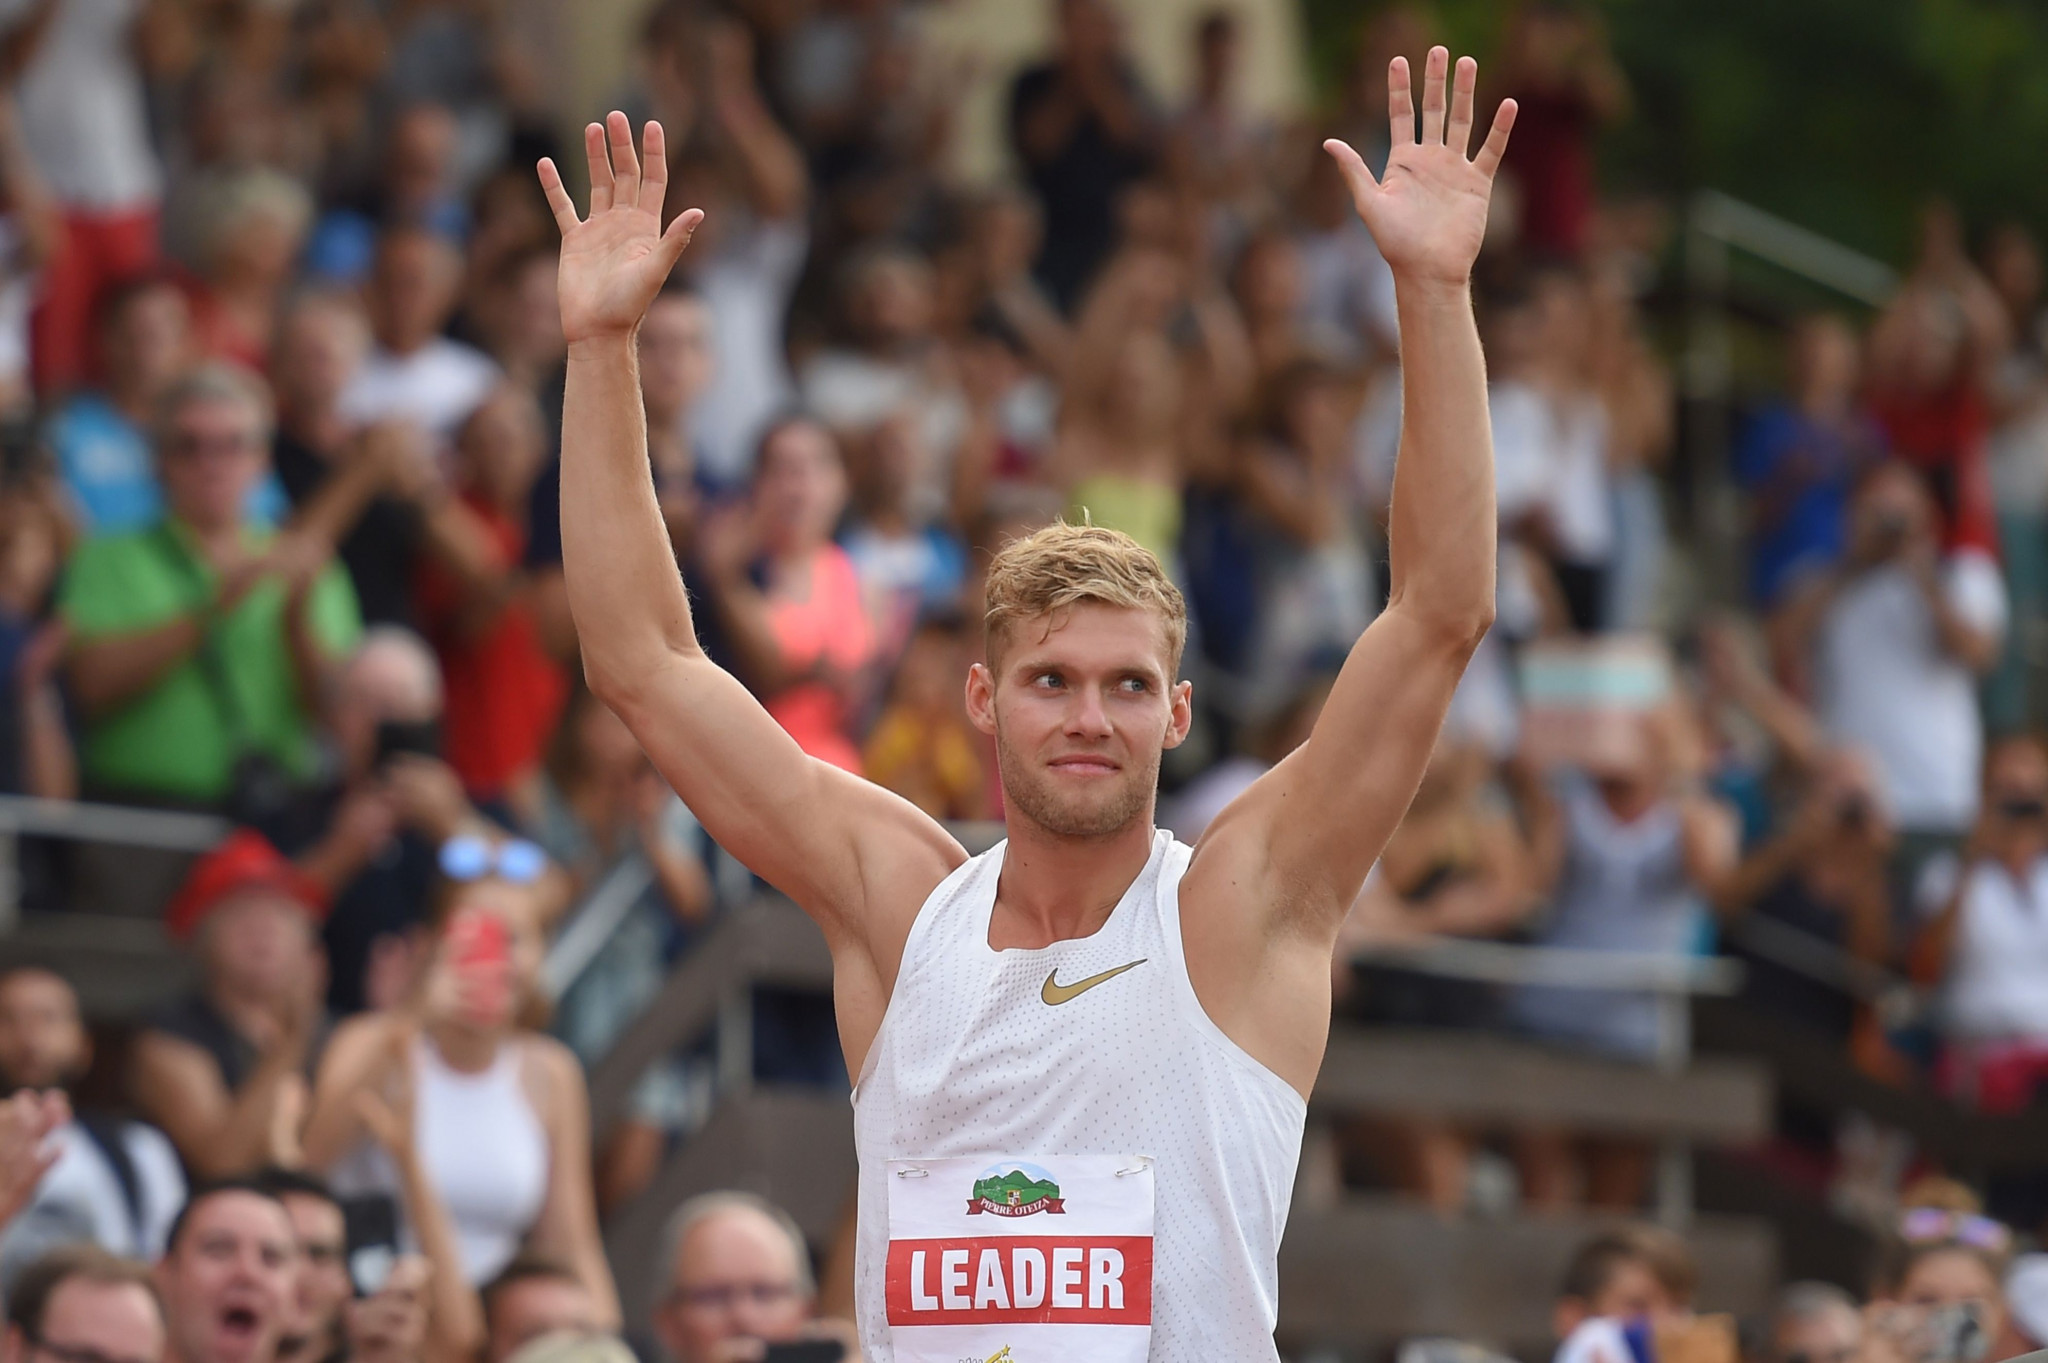 Kevin Mayer is the decathlon world record holder ©Getty Images